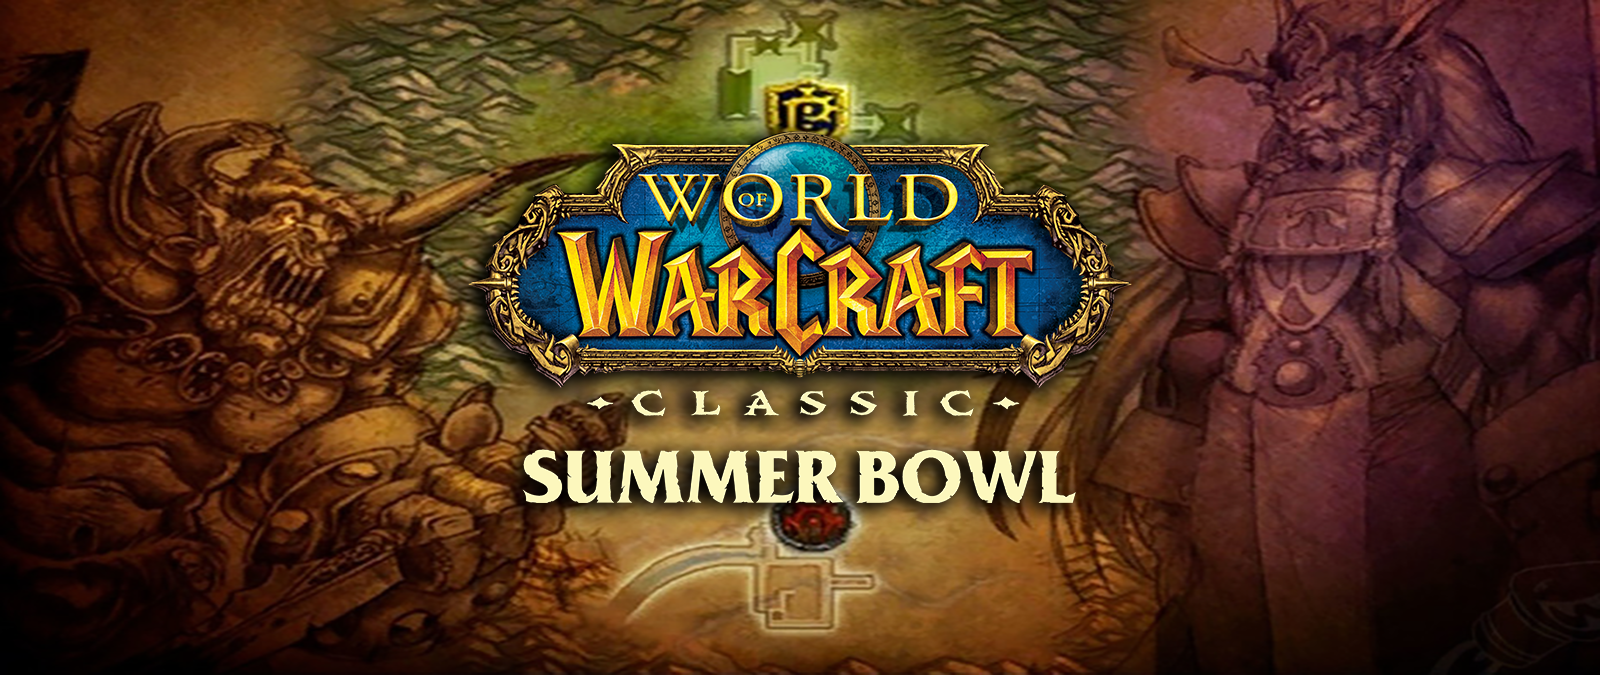 ¡Presentamos el World of Warcraft Classic Summer Bowl!